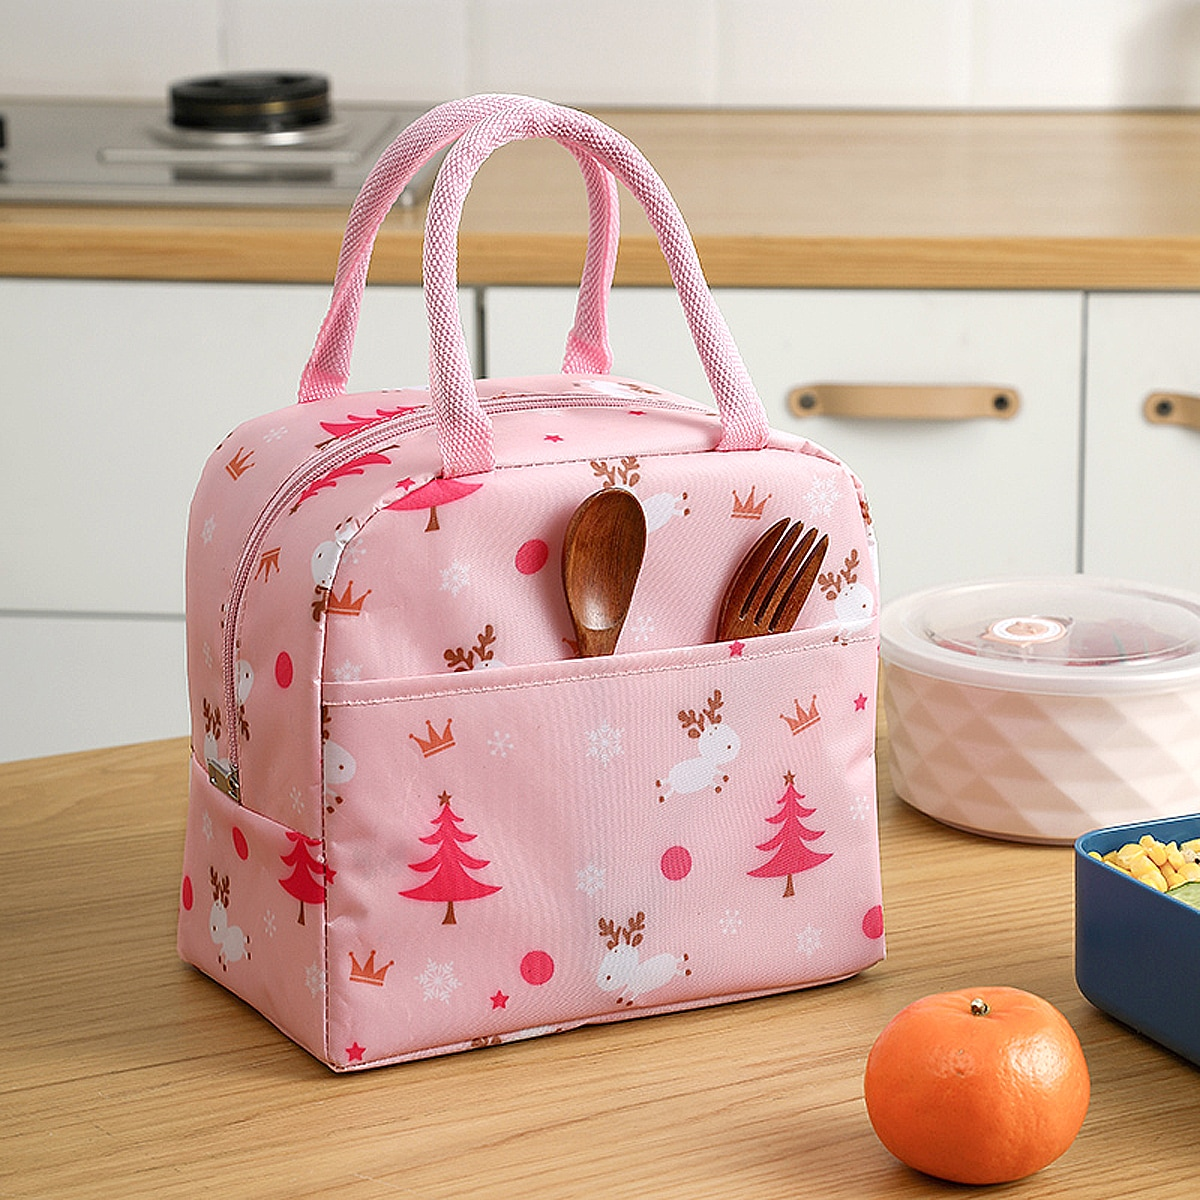 SHEIN / Tree & Deer Print Lunch Bag